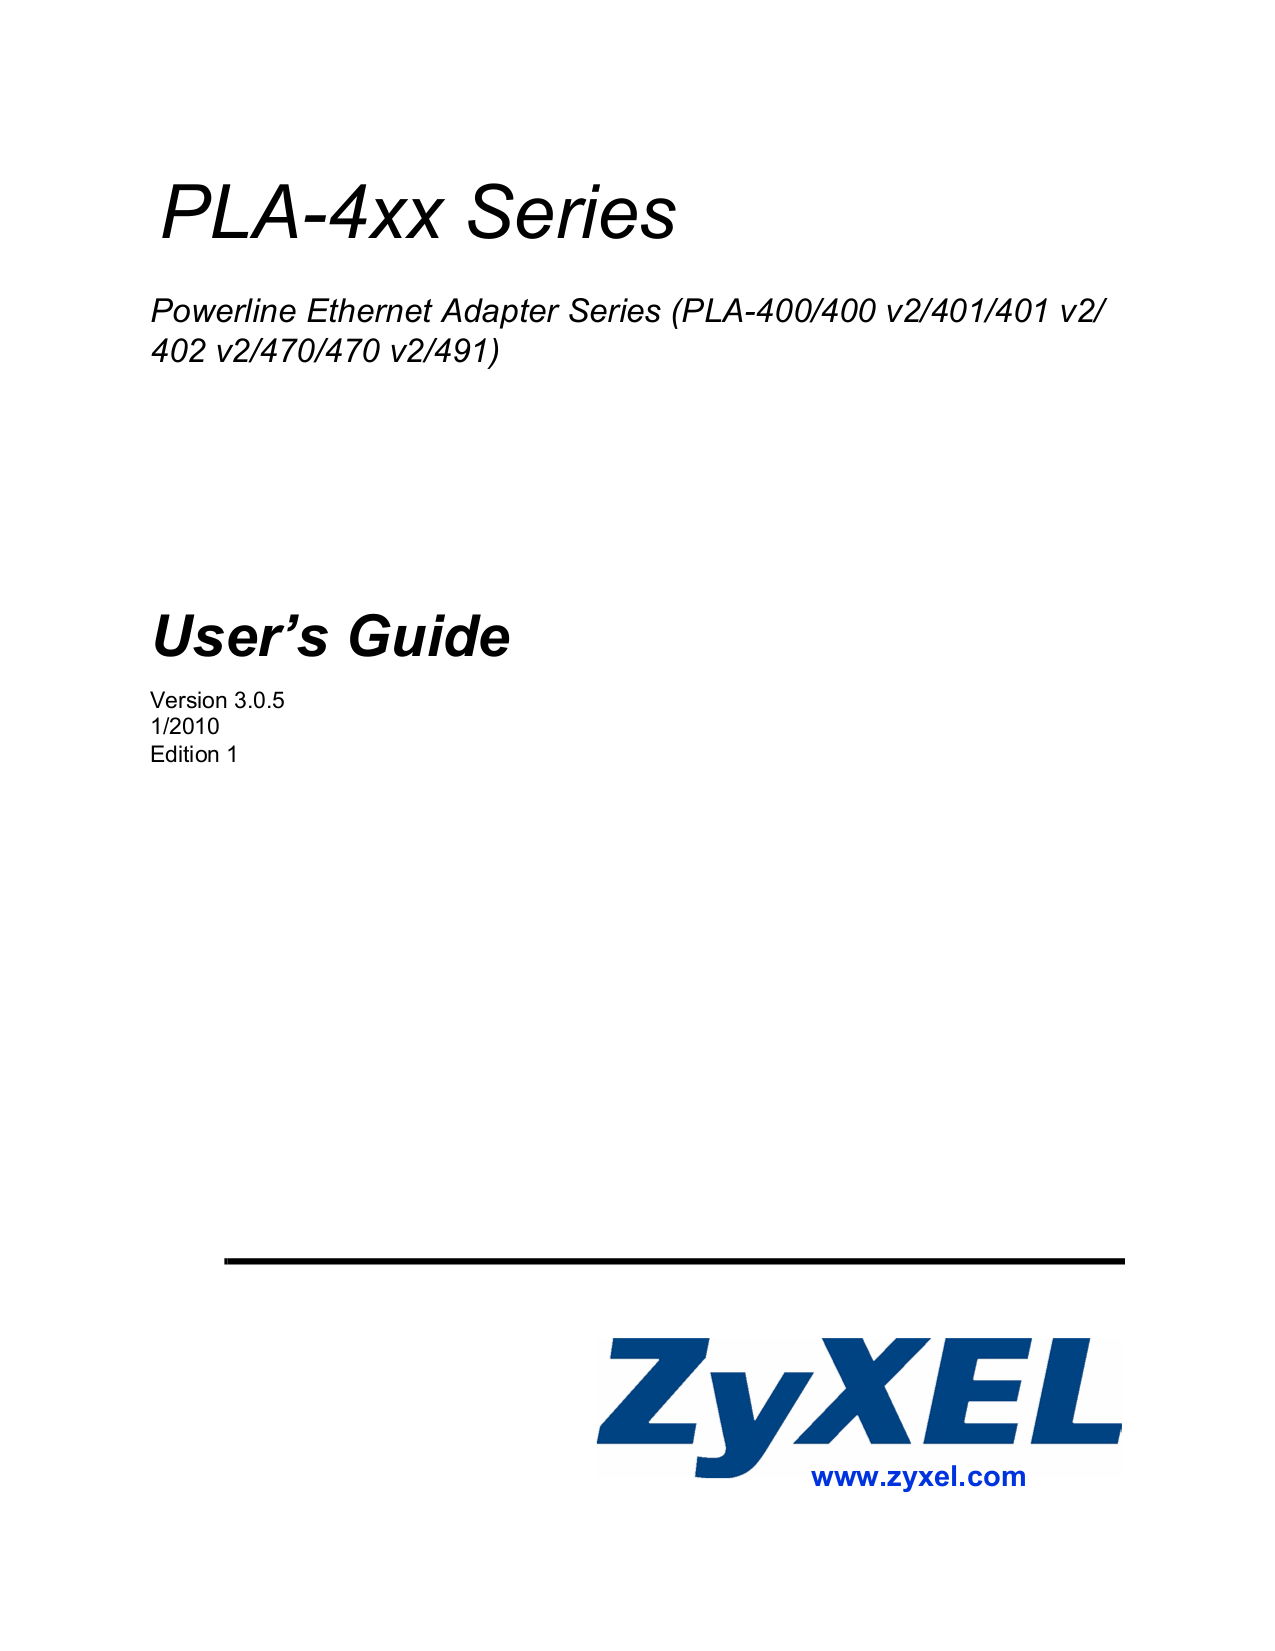 pdf for Zyxel Other PLA-470 V2 Ethernet Adapters manual